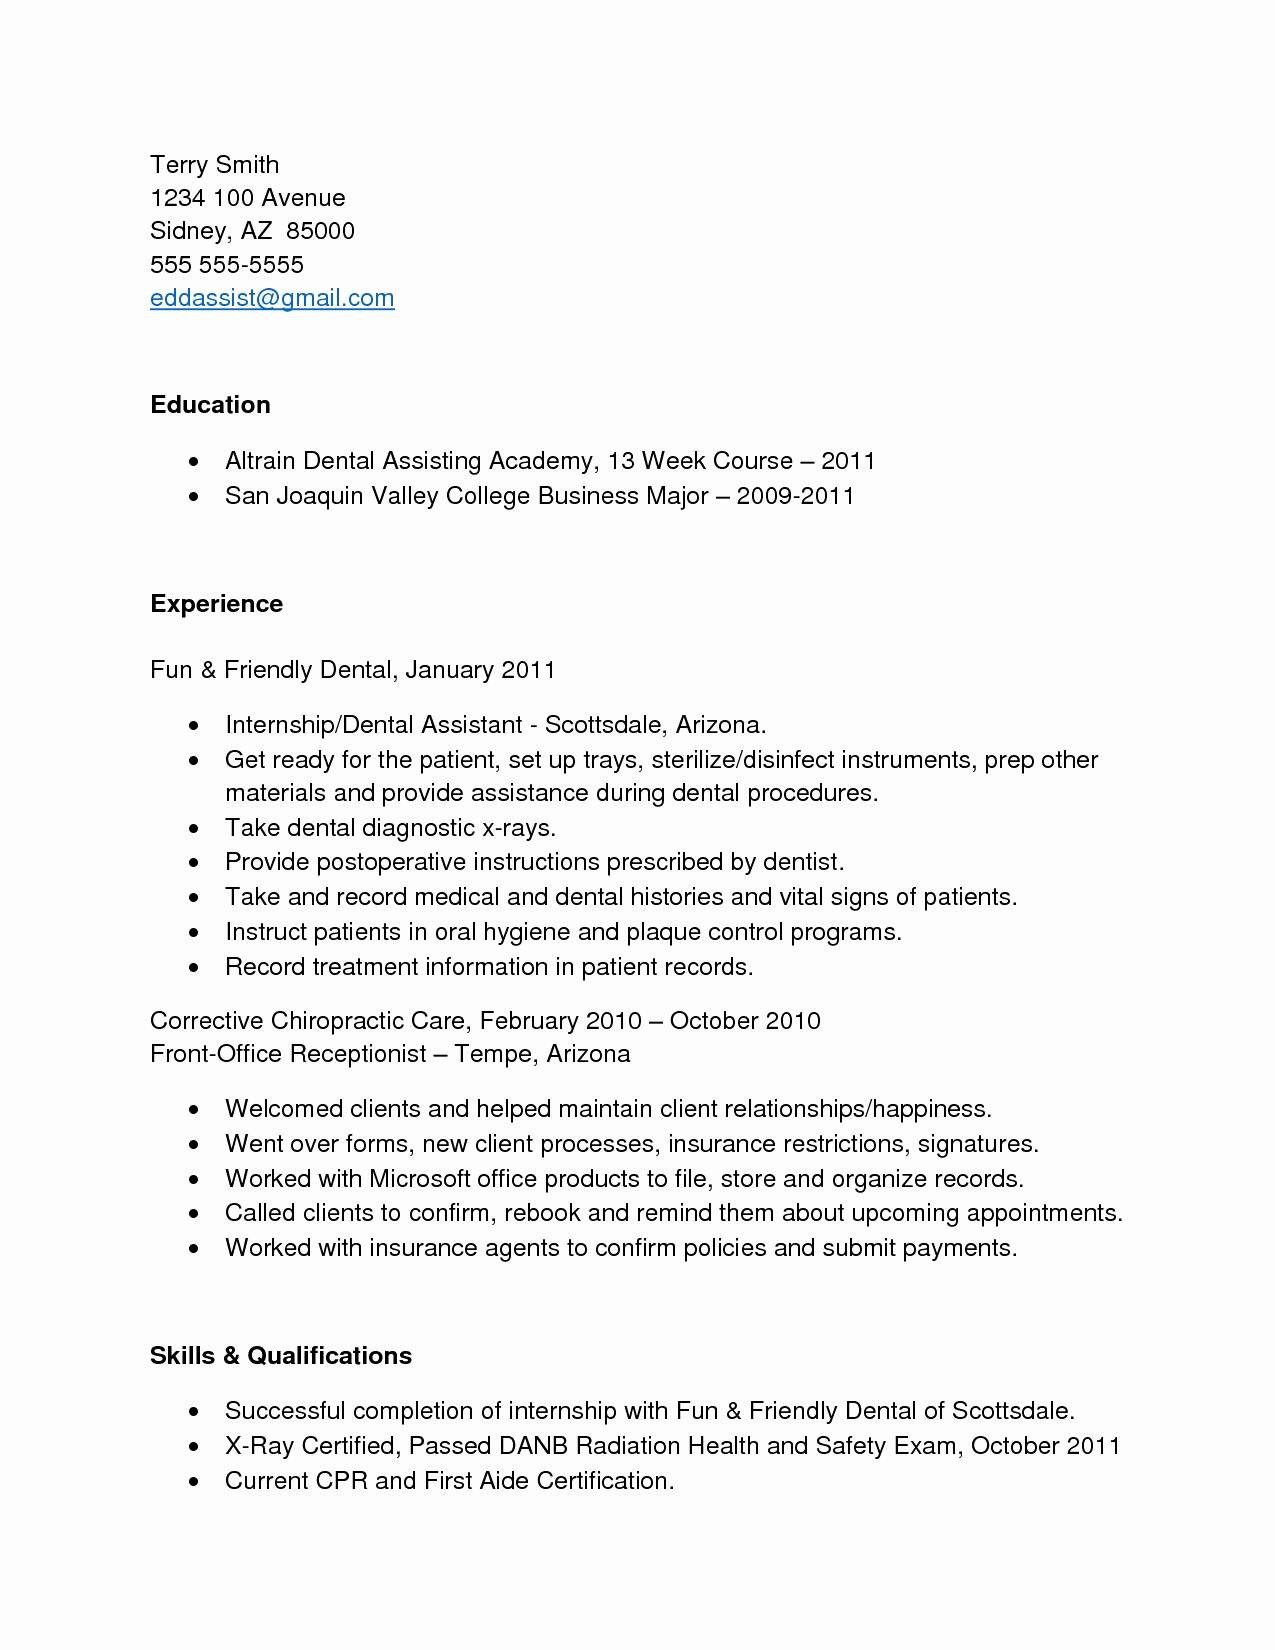 Sample Resume for Dental assistant with No Experience - Sample Resume for Dental assistant with No Experience Awesome